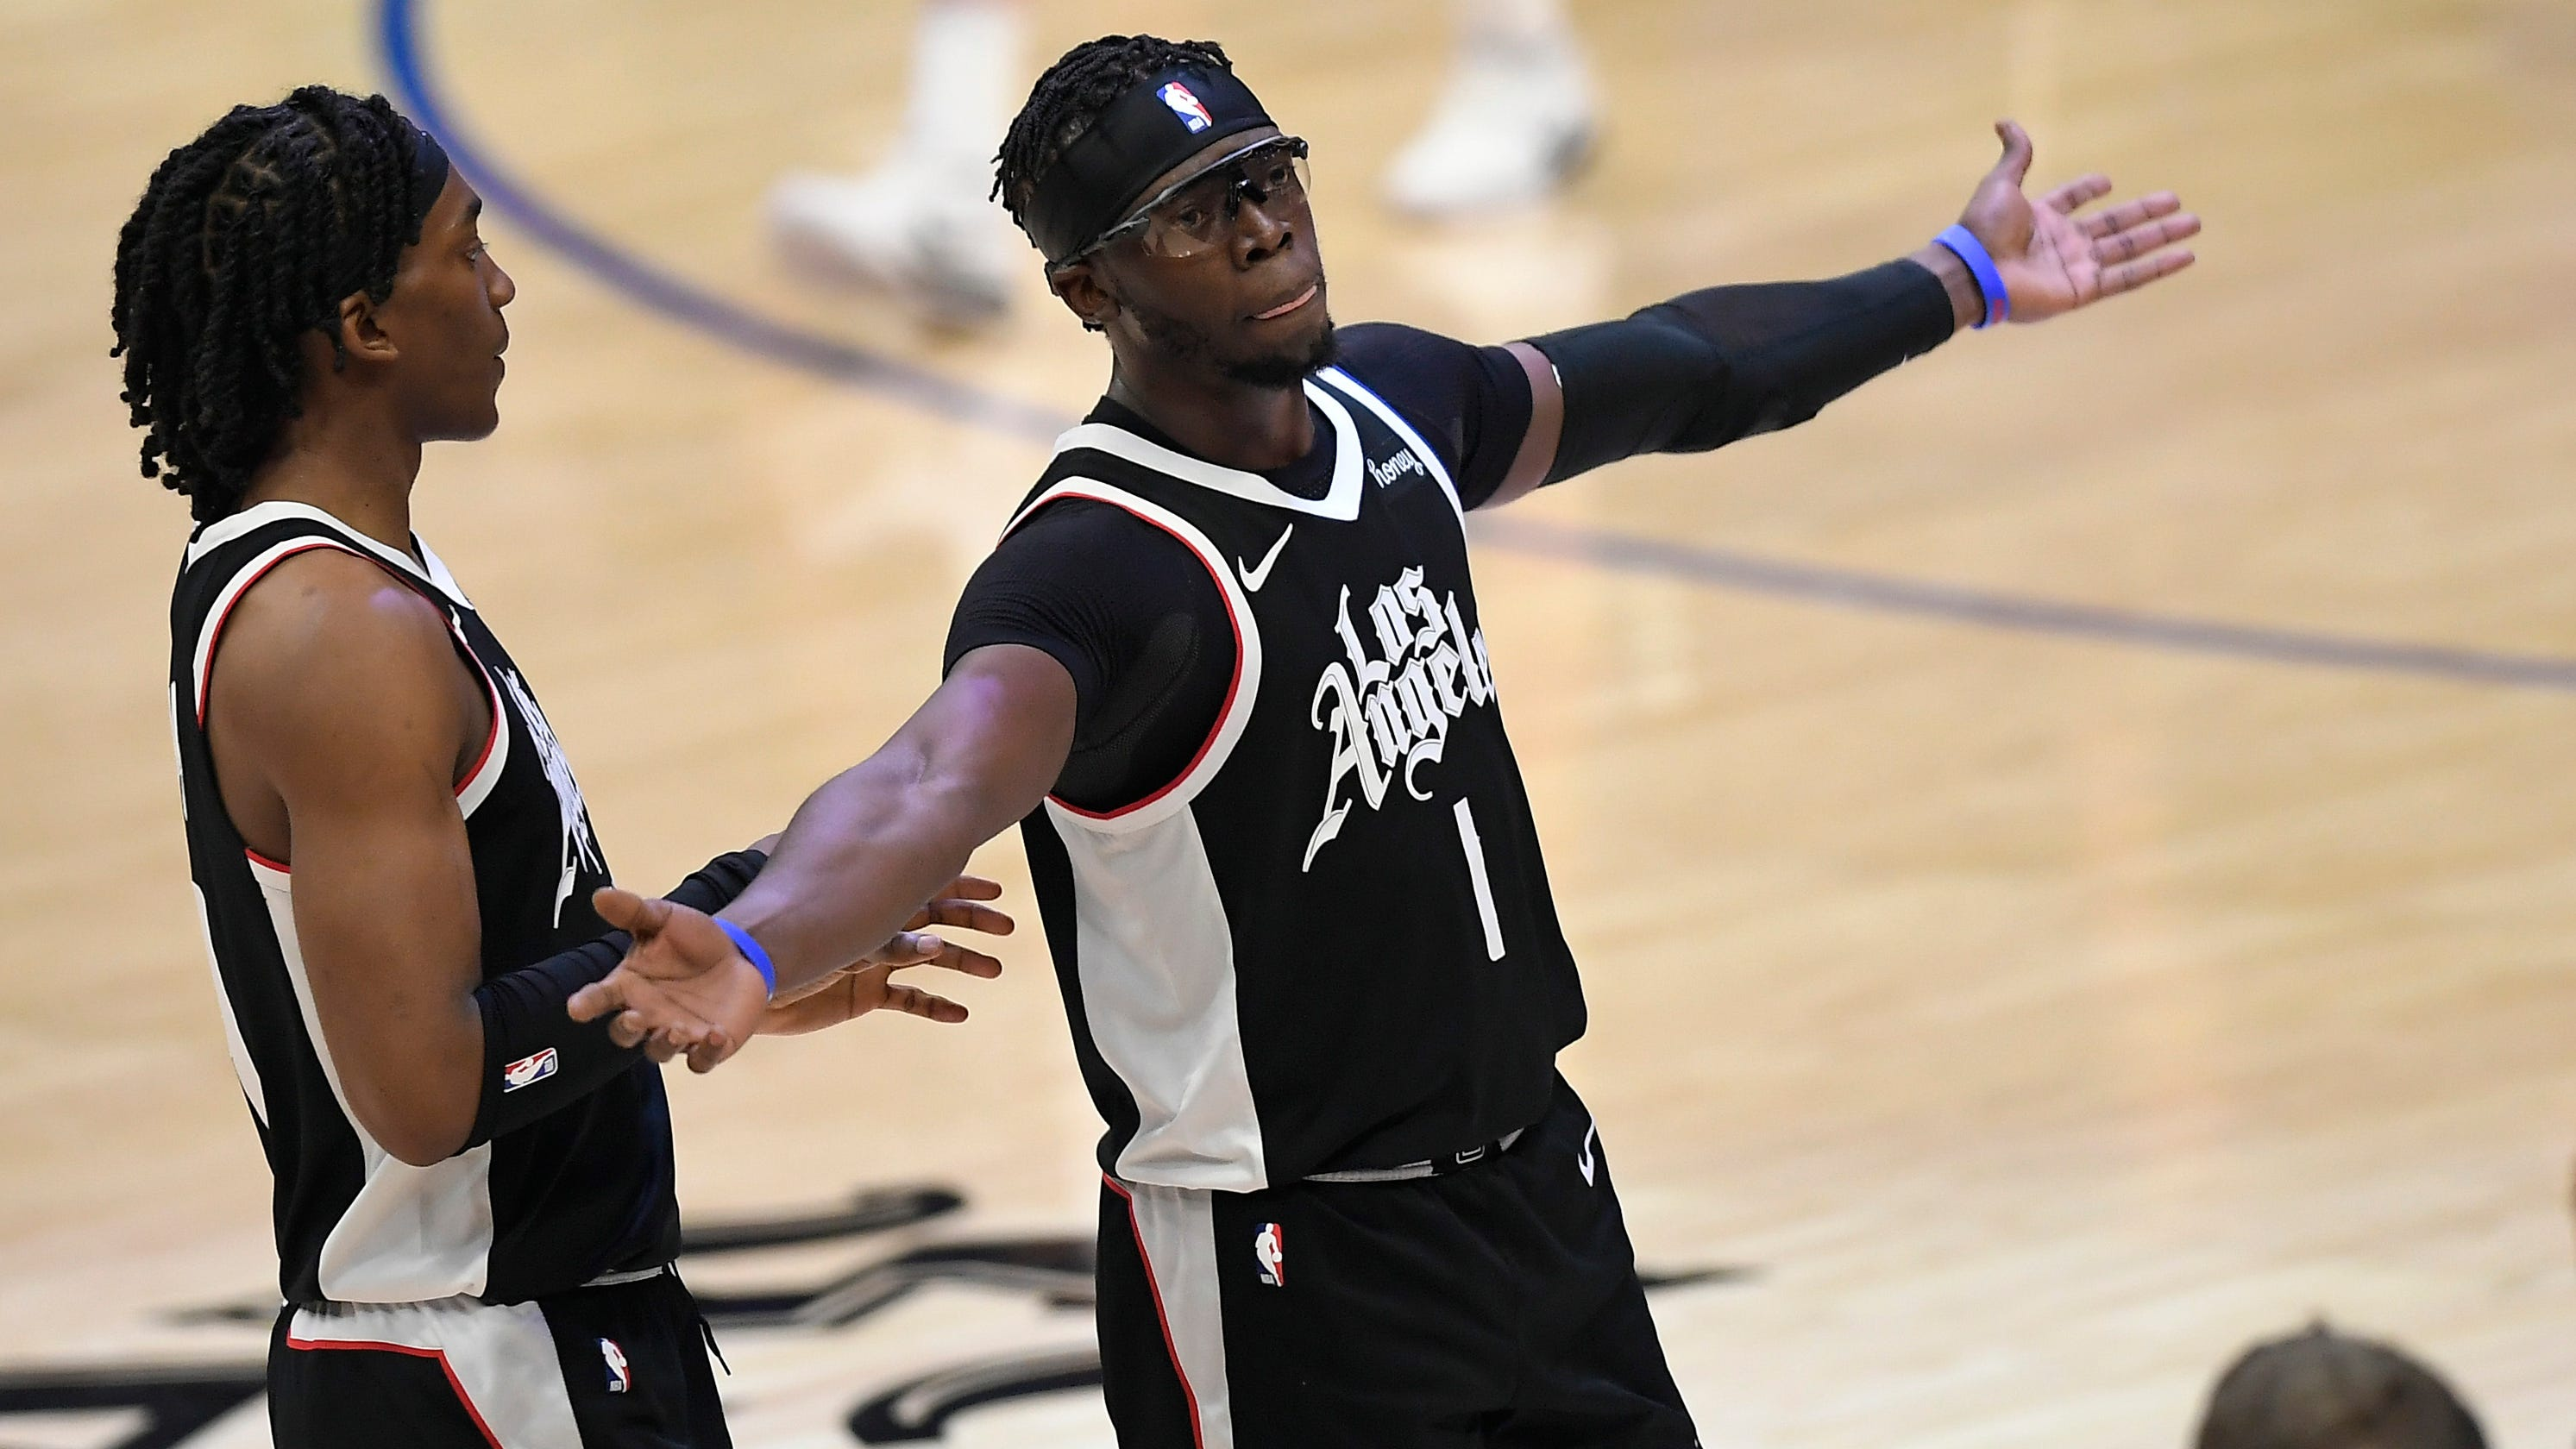 Clippers shock Jazz to finally break through to Western Conference finals: 'You felt the monkey off of the Clippers' back'